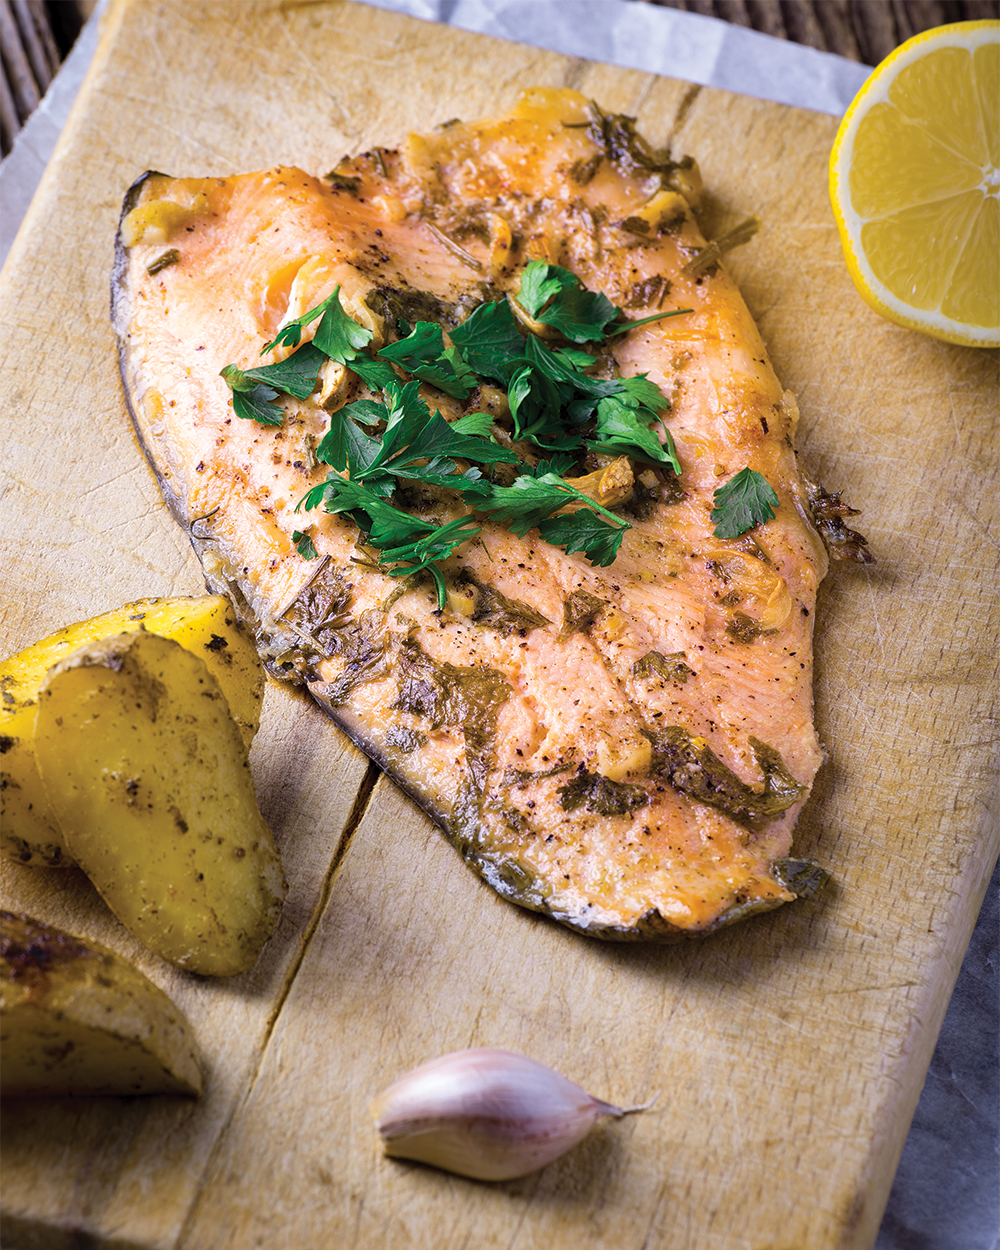 Broiled Steelhead Trout with Lemon, Garlic and Rosemary